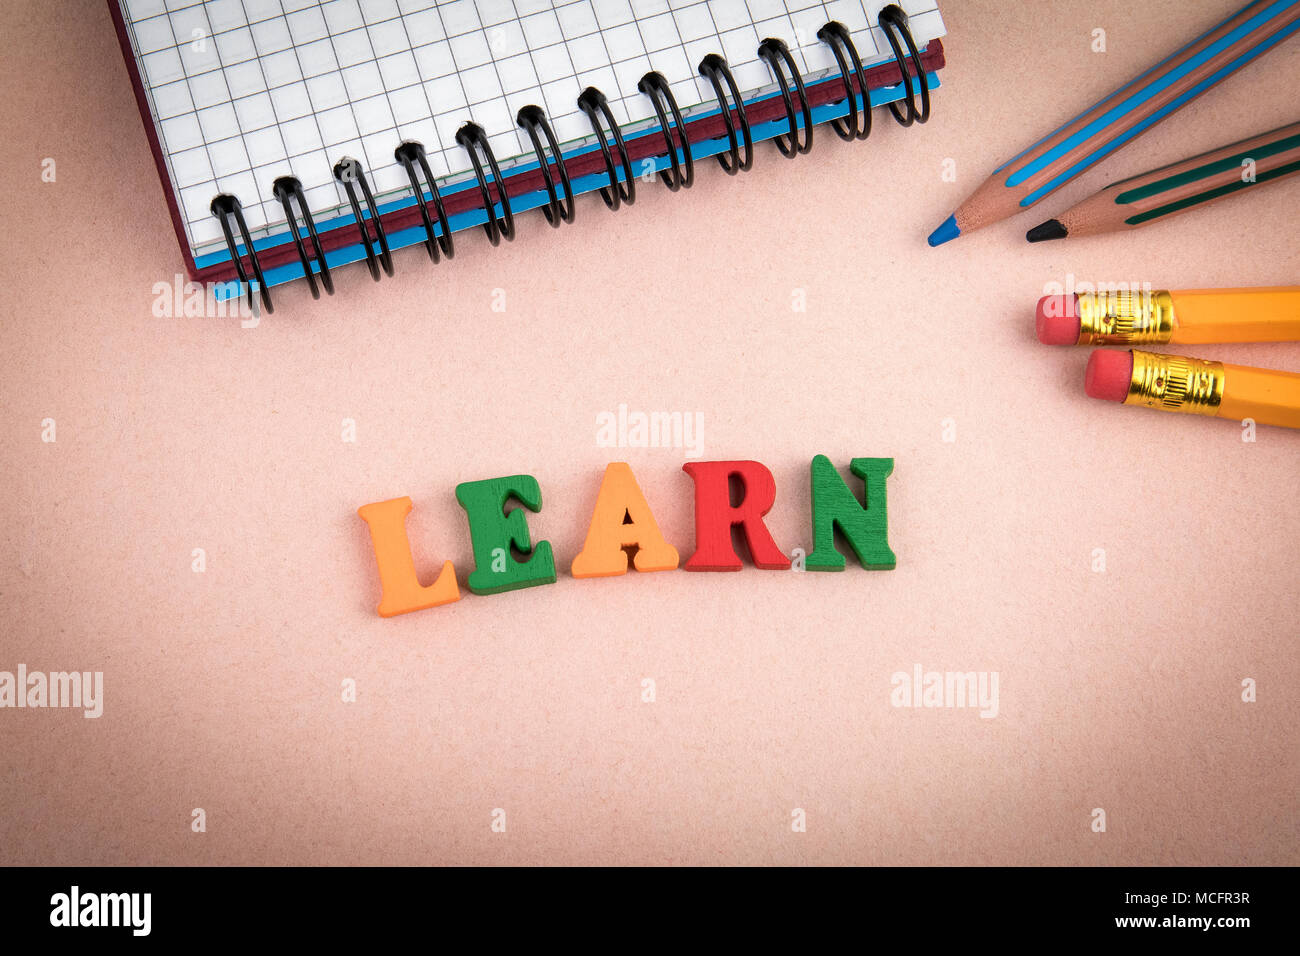 Learn. Wooden letters on the office desk - Stock Image